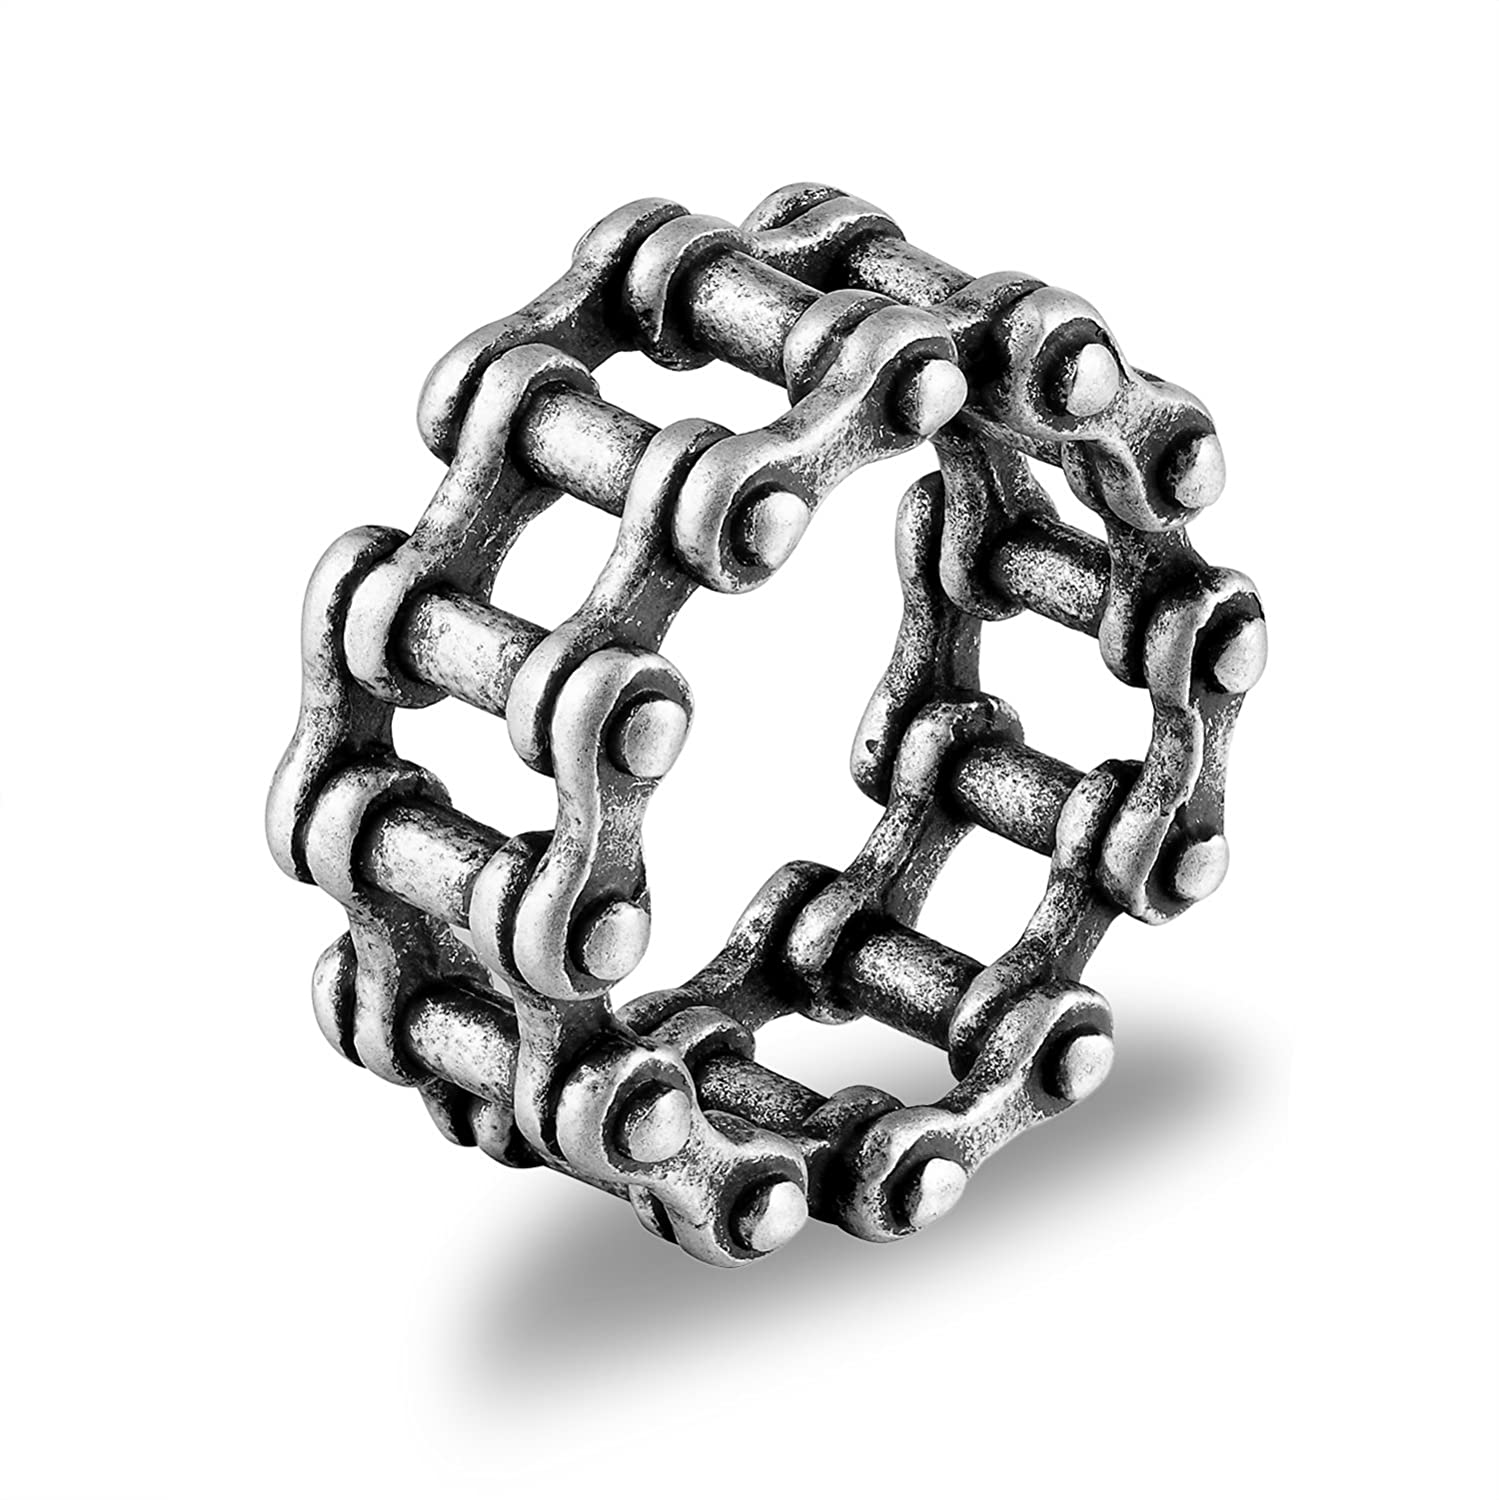 94efe6d2fd193 Denvosi Stainless Steel Ring Simple Bike Chain Punk and Rock Biker Ring for  Men Size 5-15